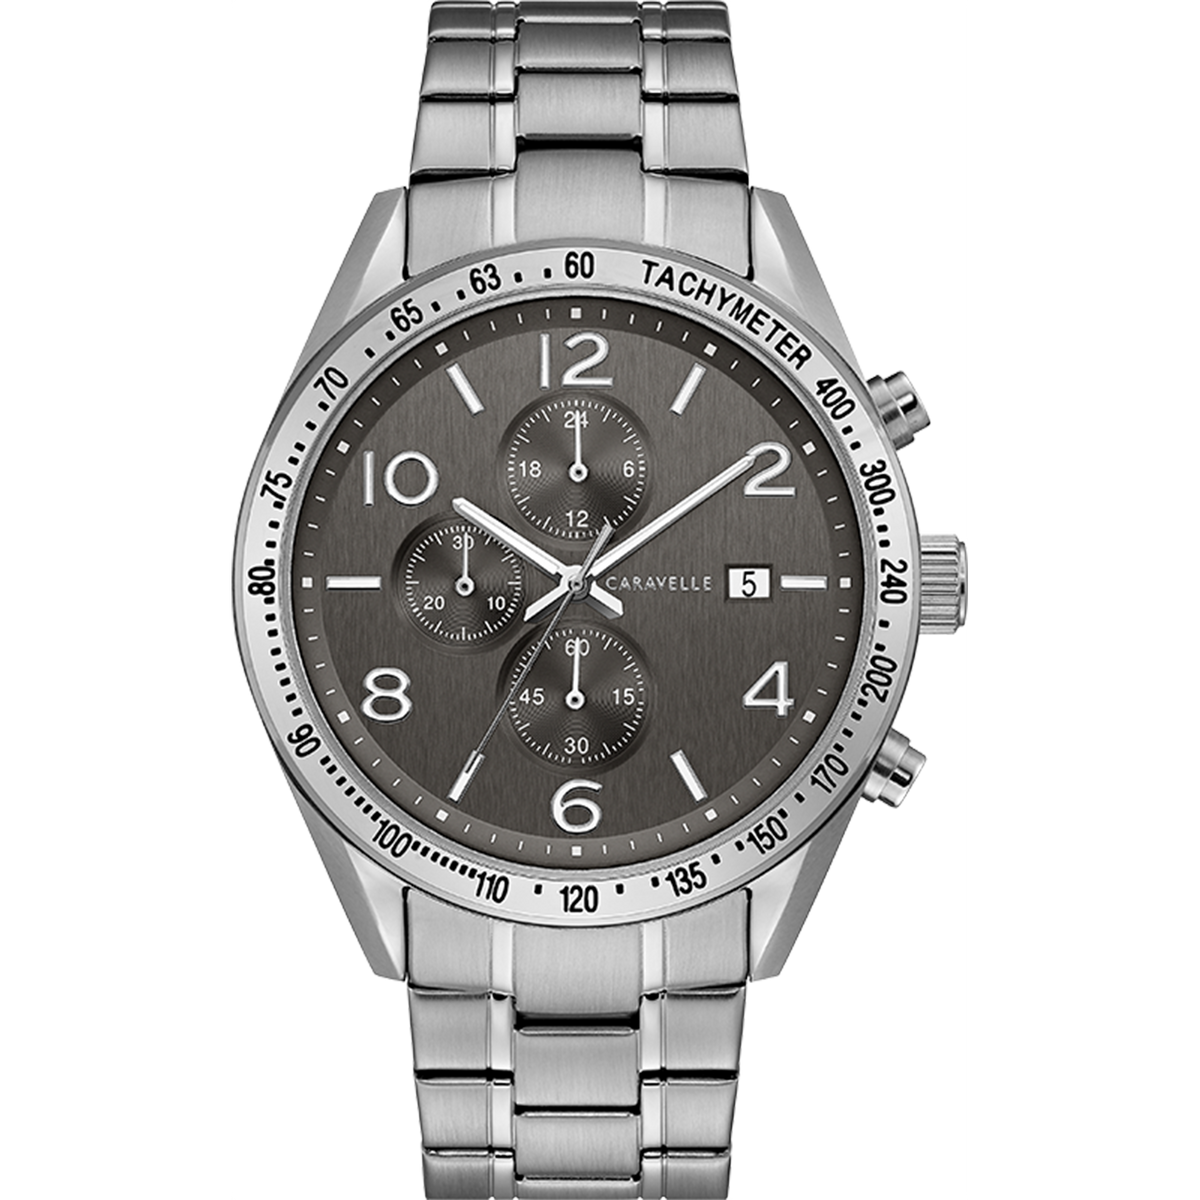 Caravelle Watch - Chronograph